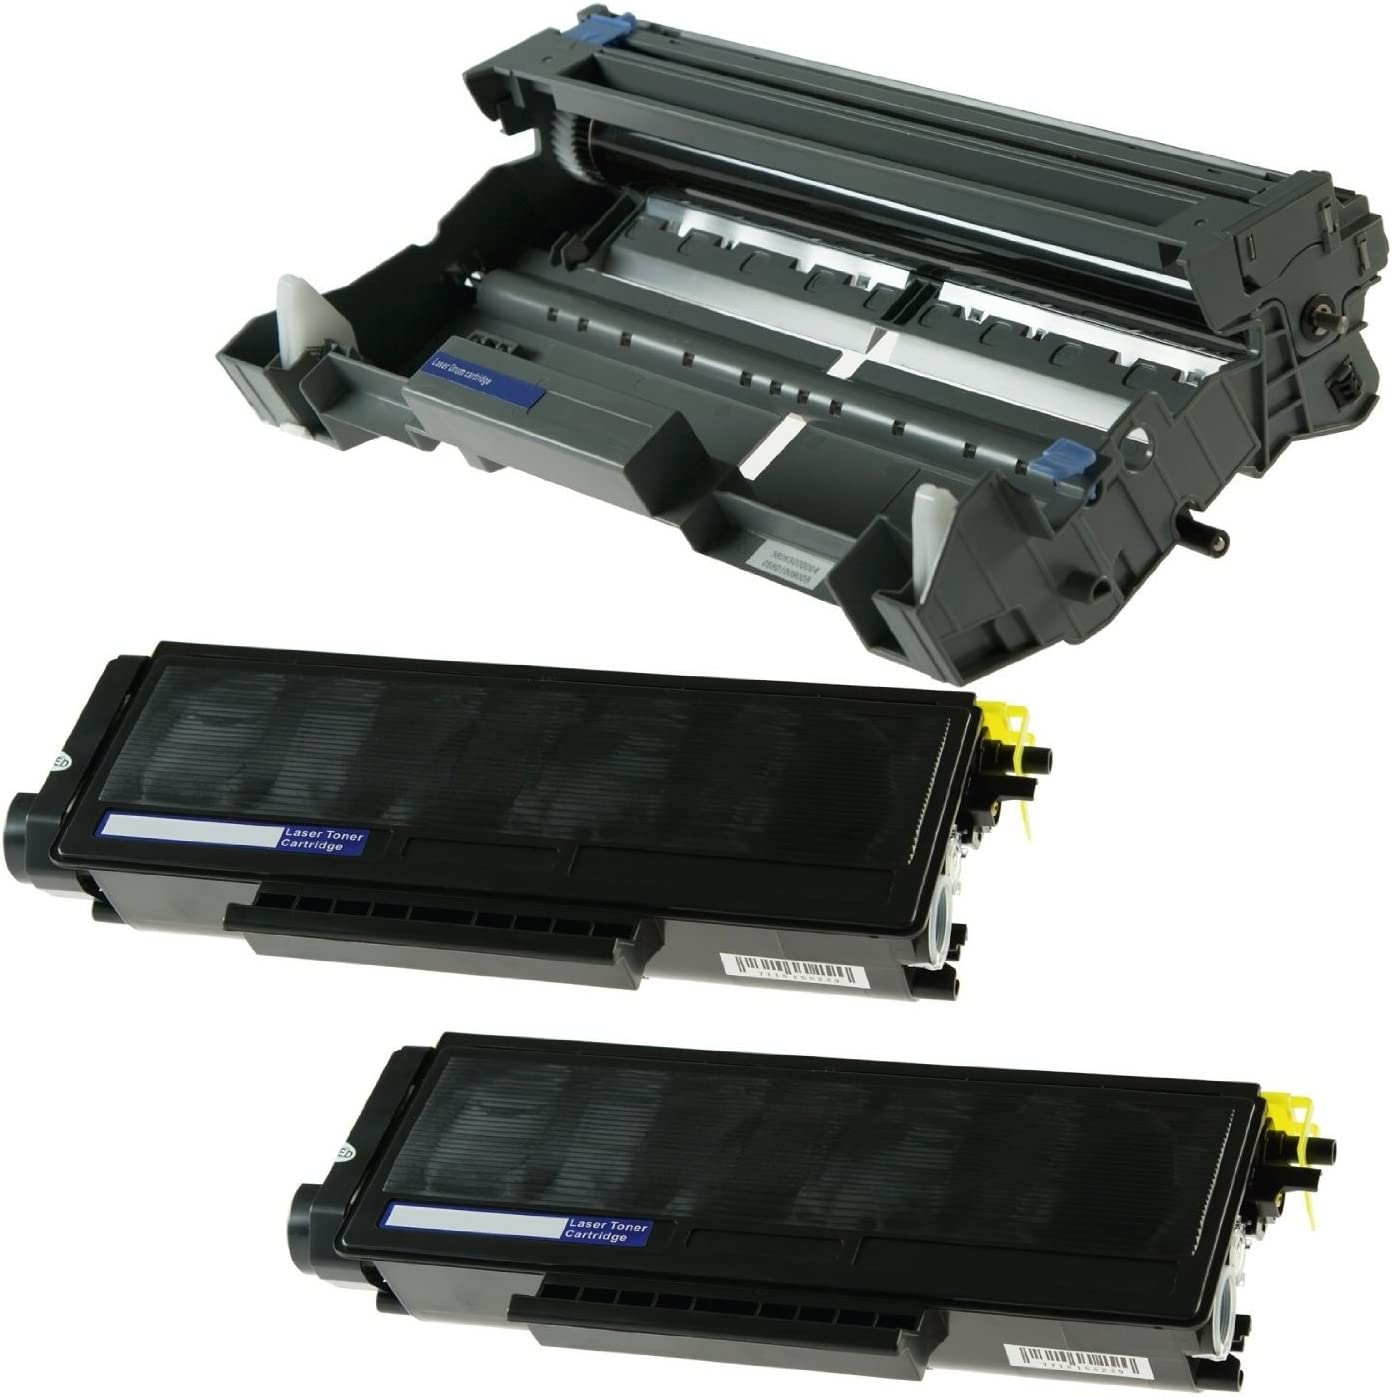 2 Compatibili Tamburo per Brother DCP-8060 DCP-8065DN DCP-8070D DCP-8085DN HL-5240 HL-5250DN HL-5270DN HL-5280DW HL-5340D HL-5350DN HL-5370DW HL-5380DN MFC-8380DN MFC-8460N MFC-8870DW MFC-8890DW